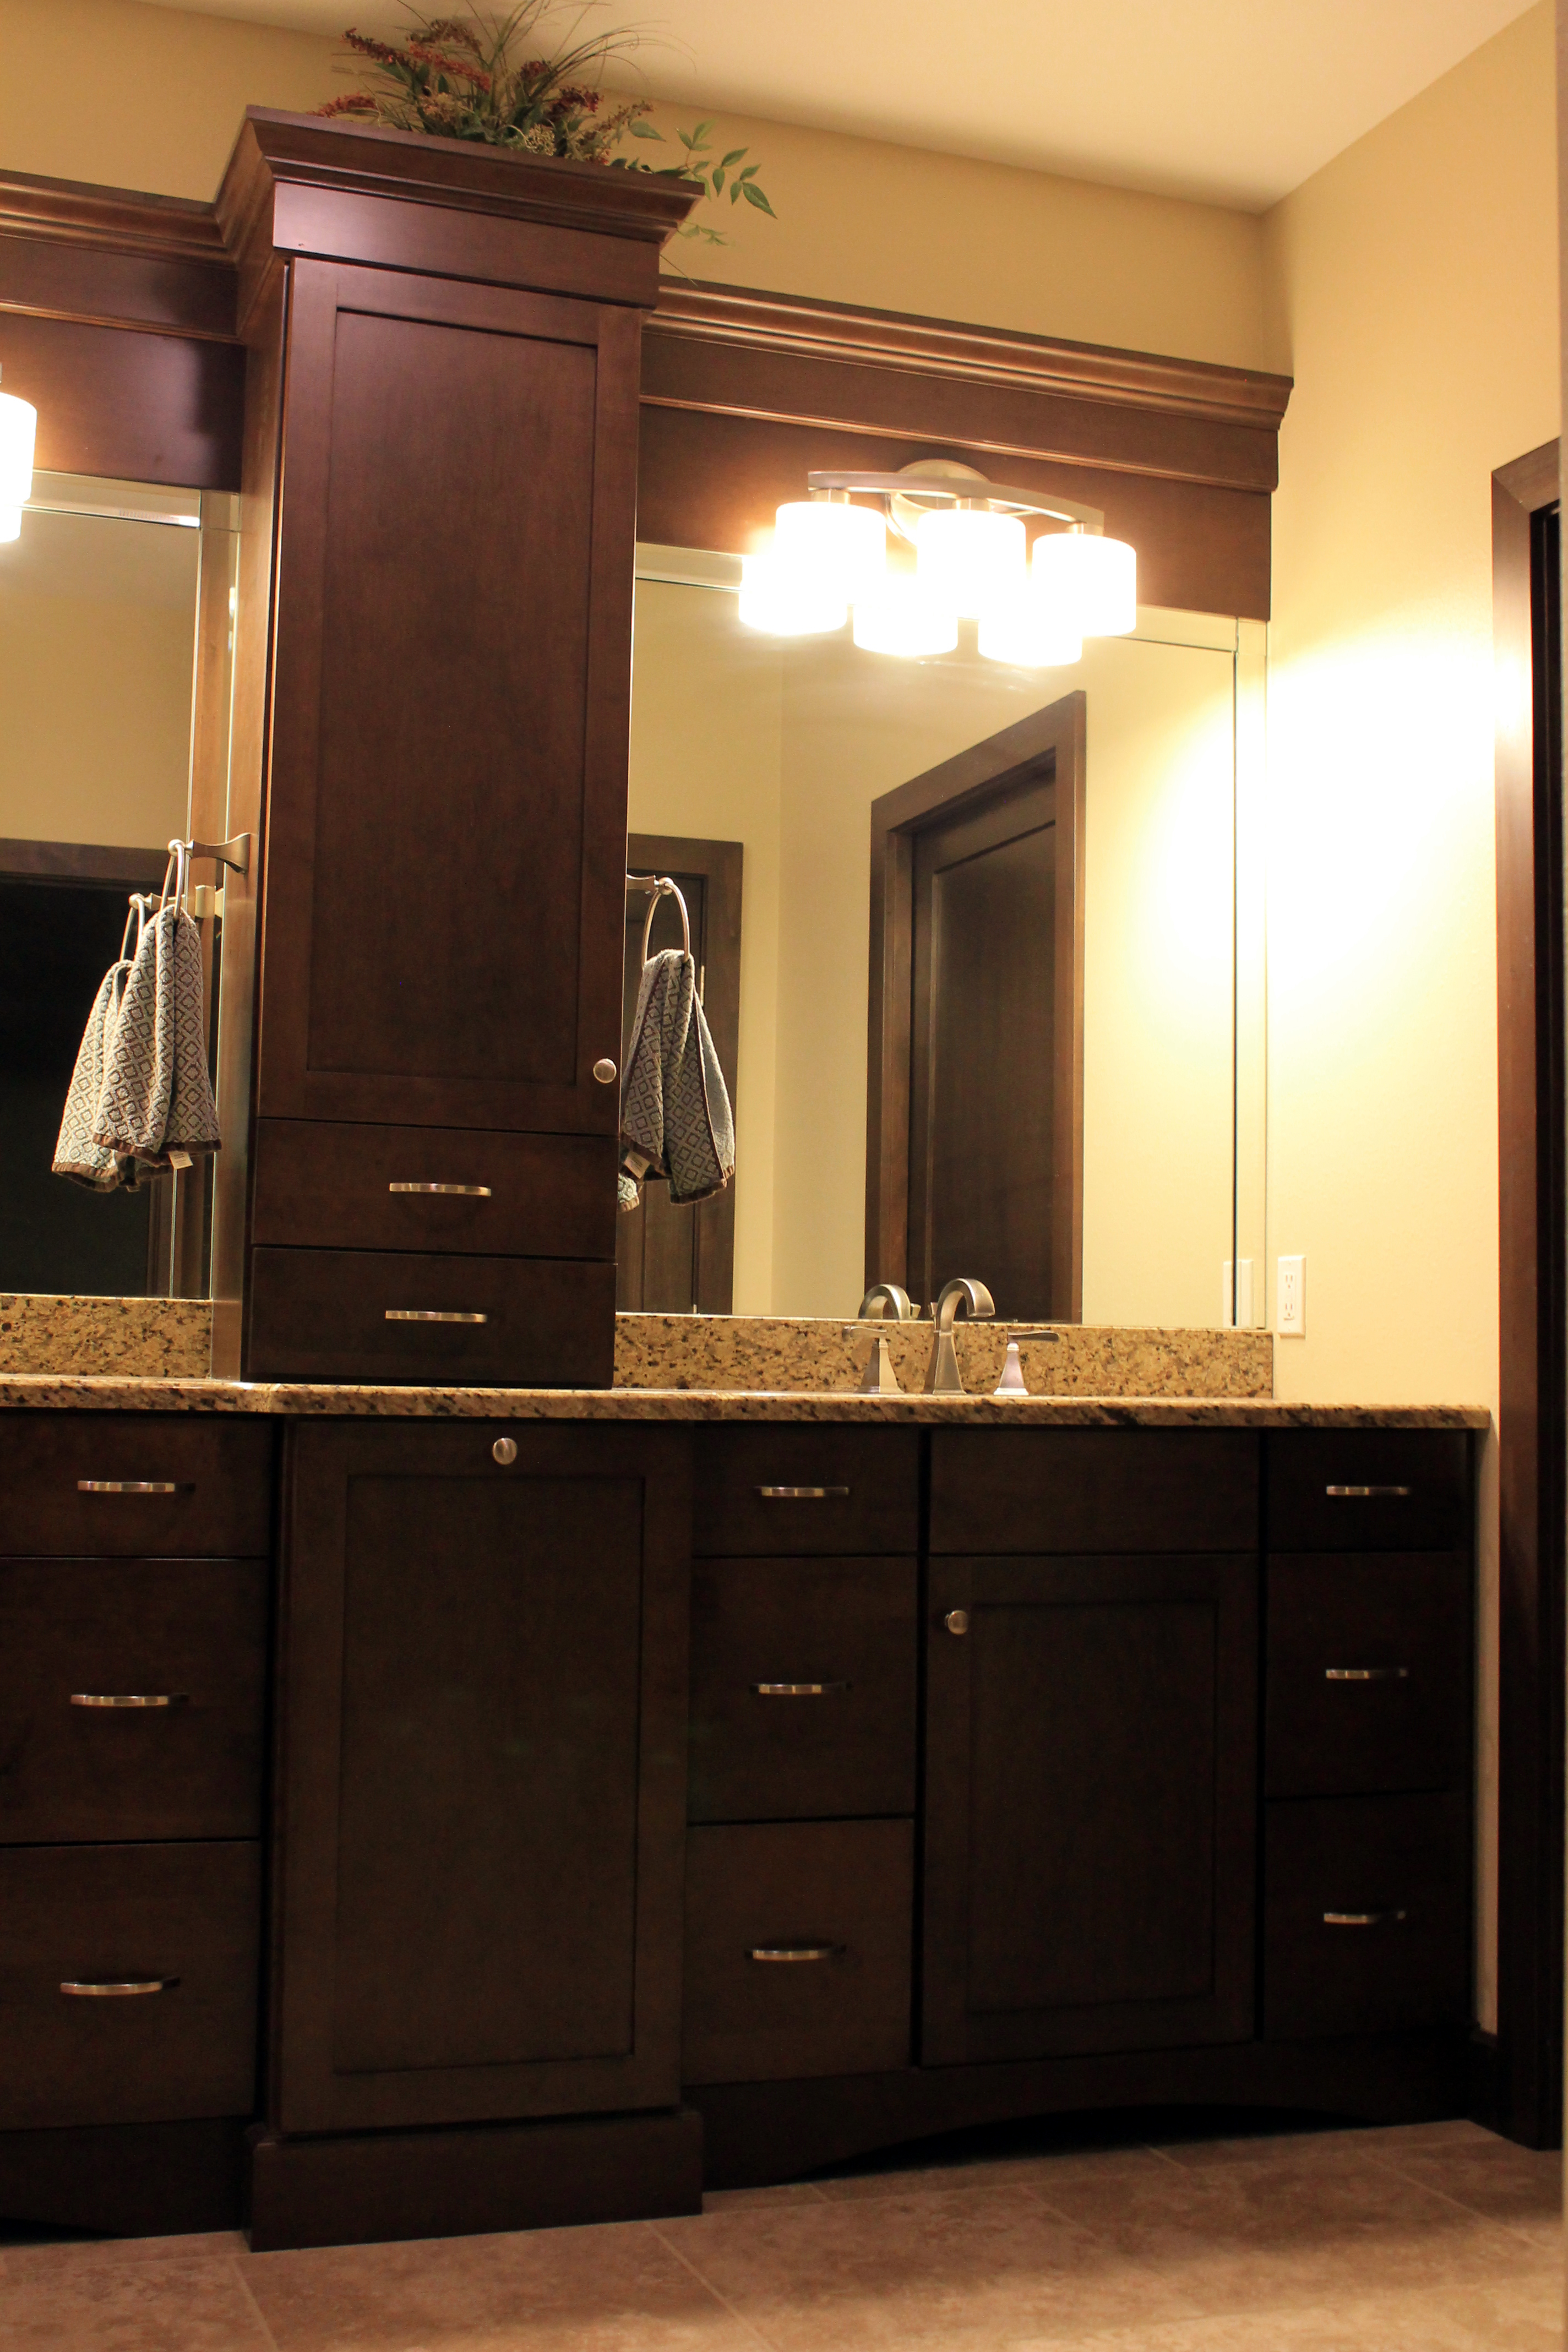 Double vanity with cabinet divide